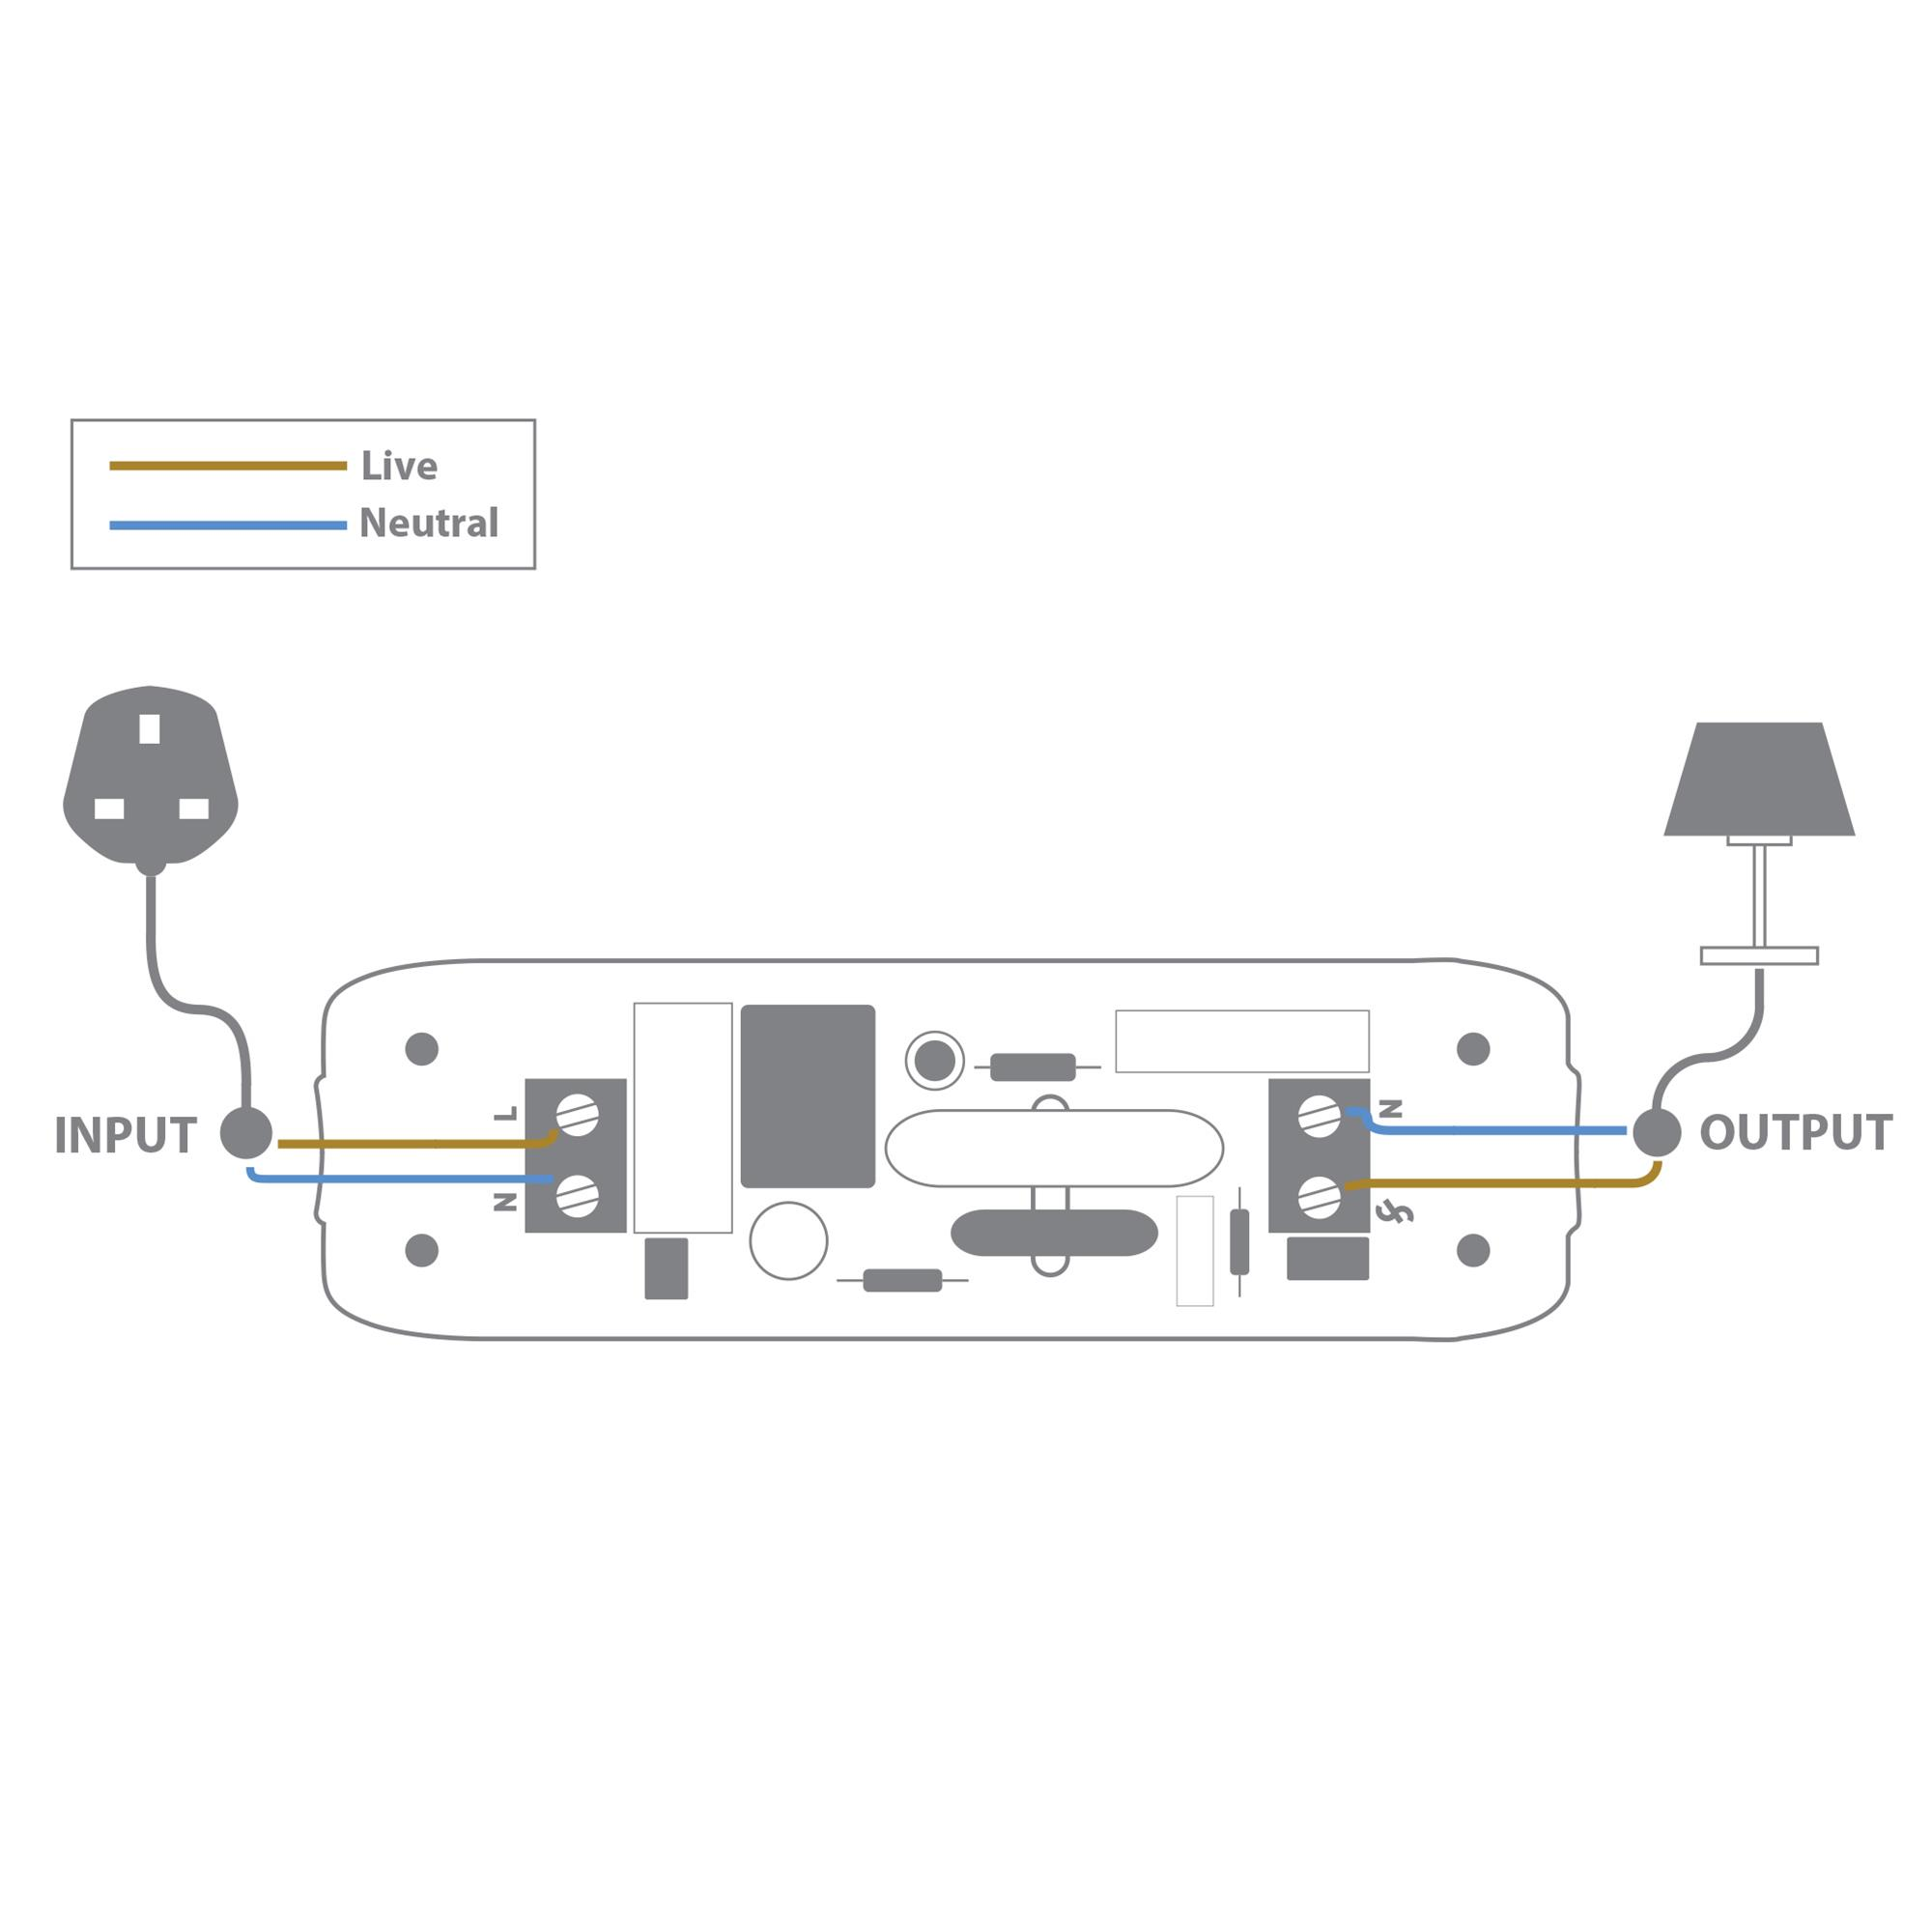 Schecter Diamond Series Wiring Diagram together with Fluorescent in addition 4 L  T8 Ballast Wiring Diagram additionally Dimmable Fluorescent Ballast Wiring Diagram further Fixture Wiring Diagram. on t12 ballast wiring diagram